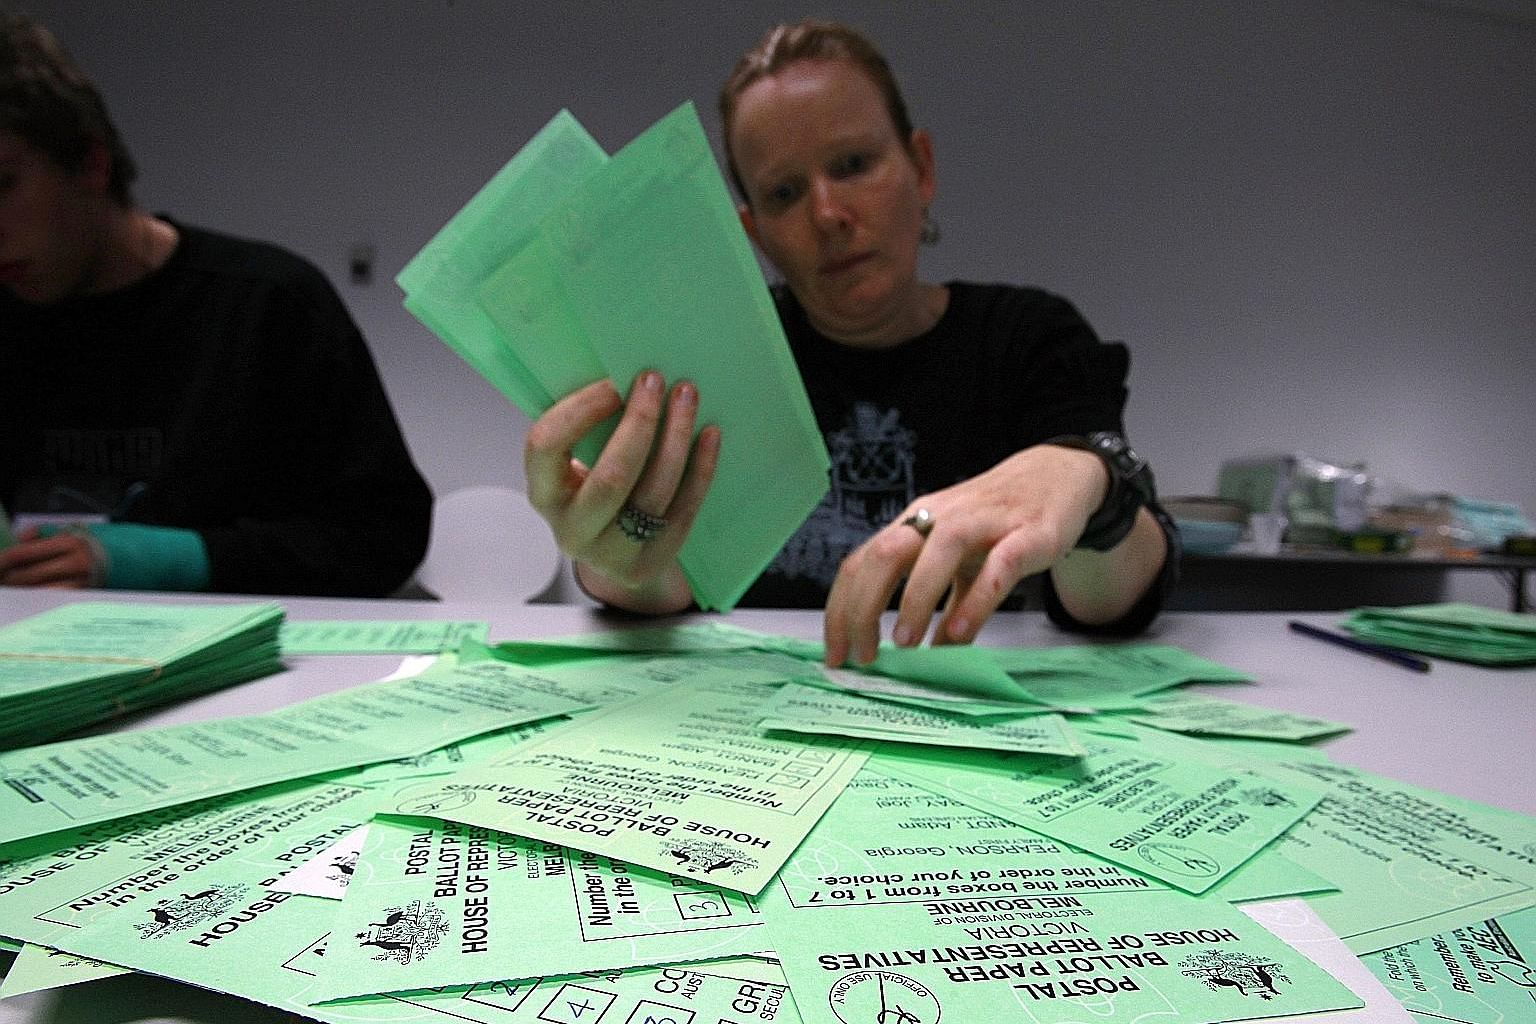 Ballot papers at an Australian Electoral Commission office in 2010. New rules put in place by the ruling coalition will try to prevent smaller parties from winning seats by swopping their unused votes with other parties.